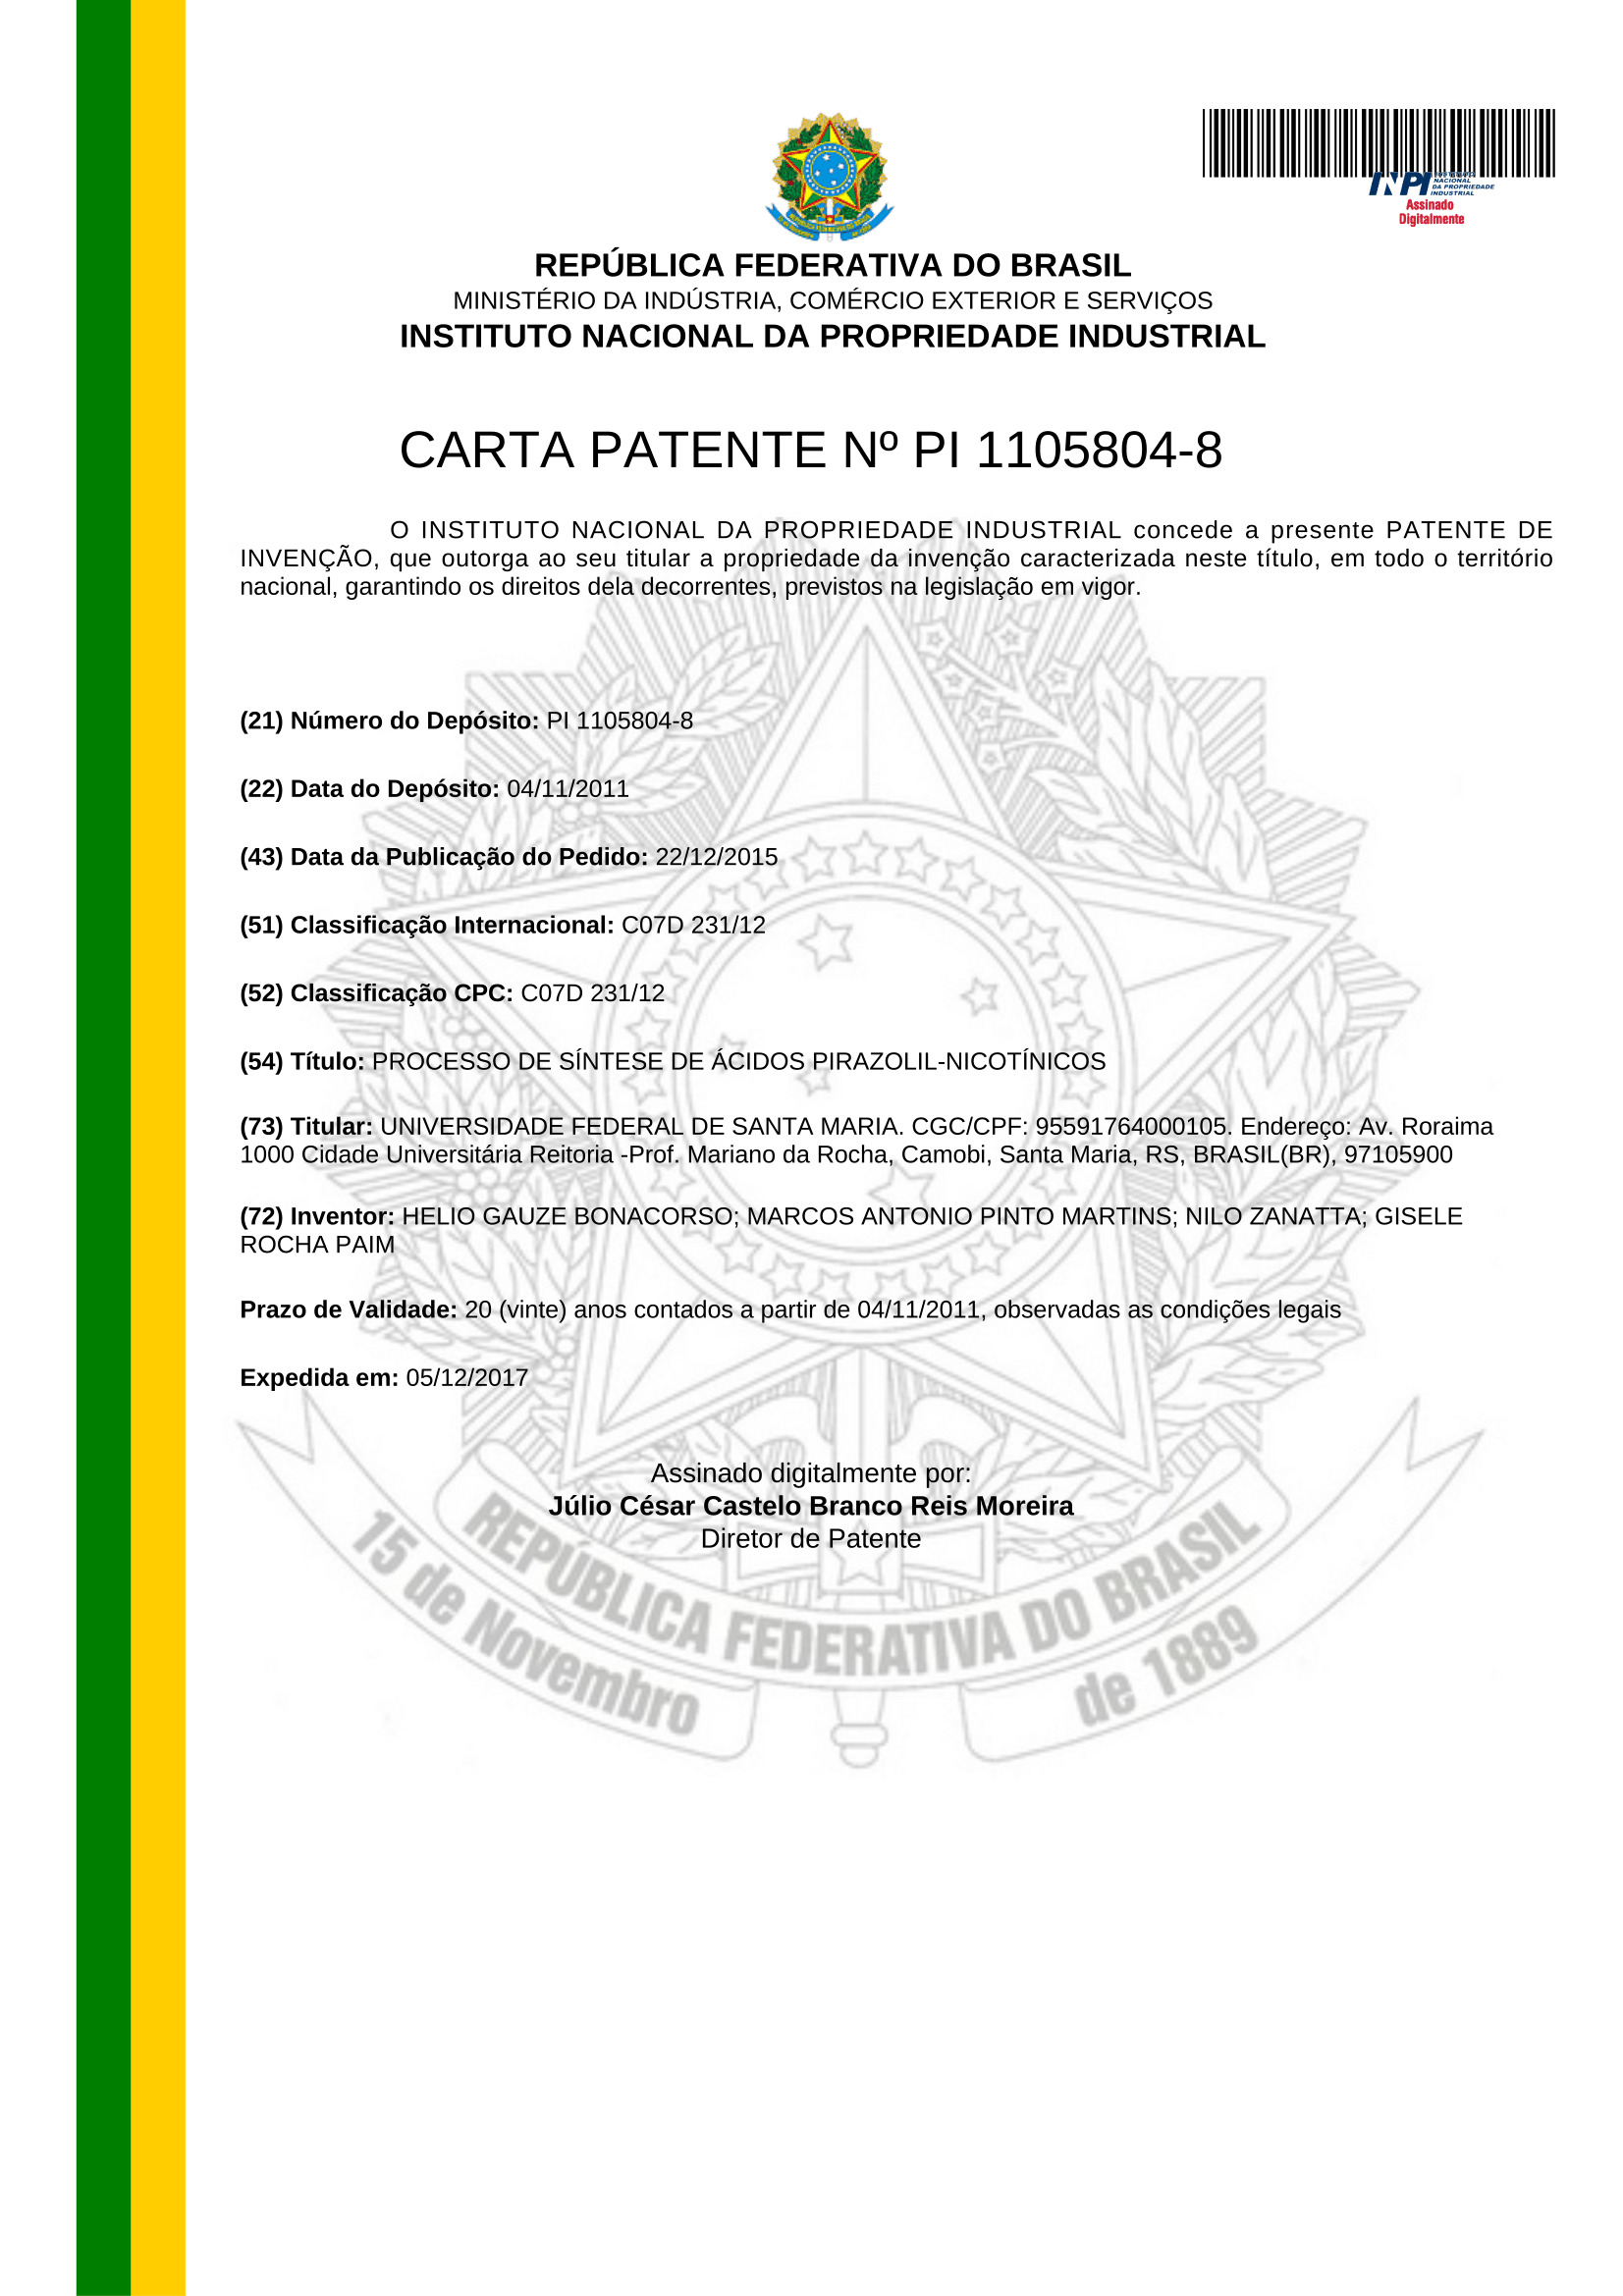 CARTA PATENTE 2 01